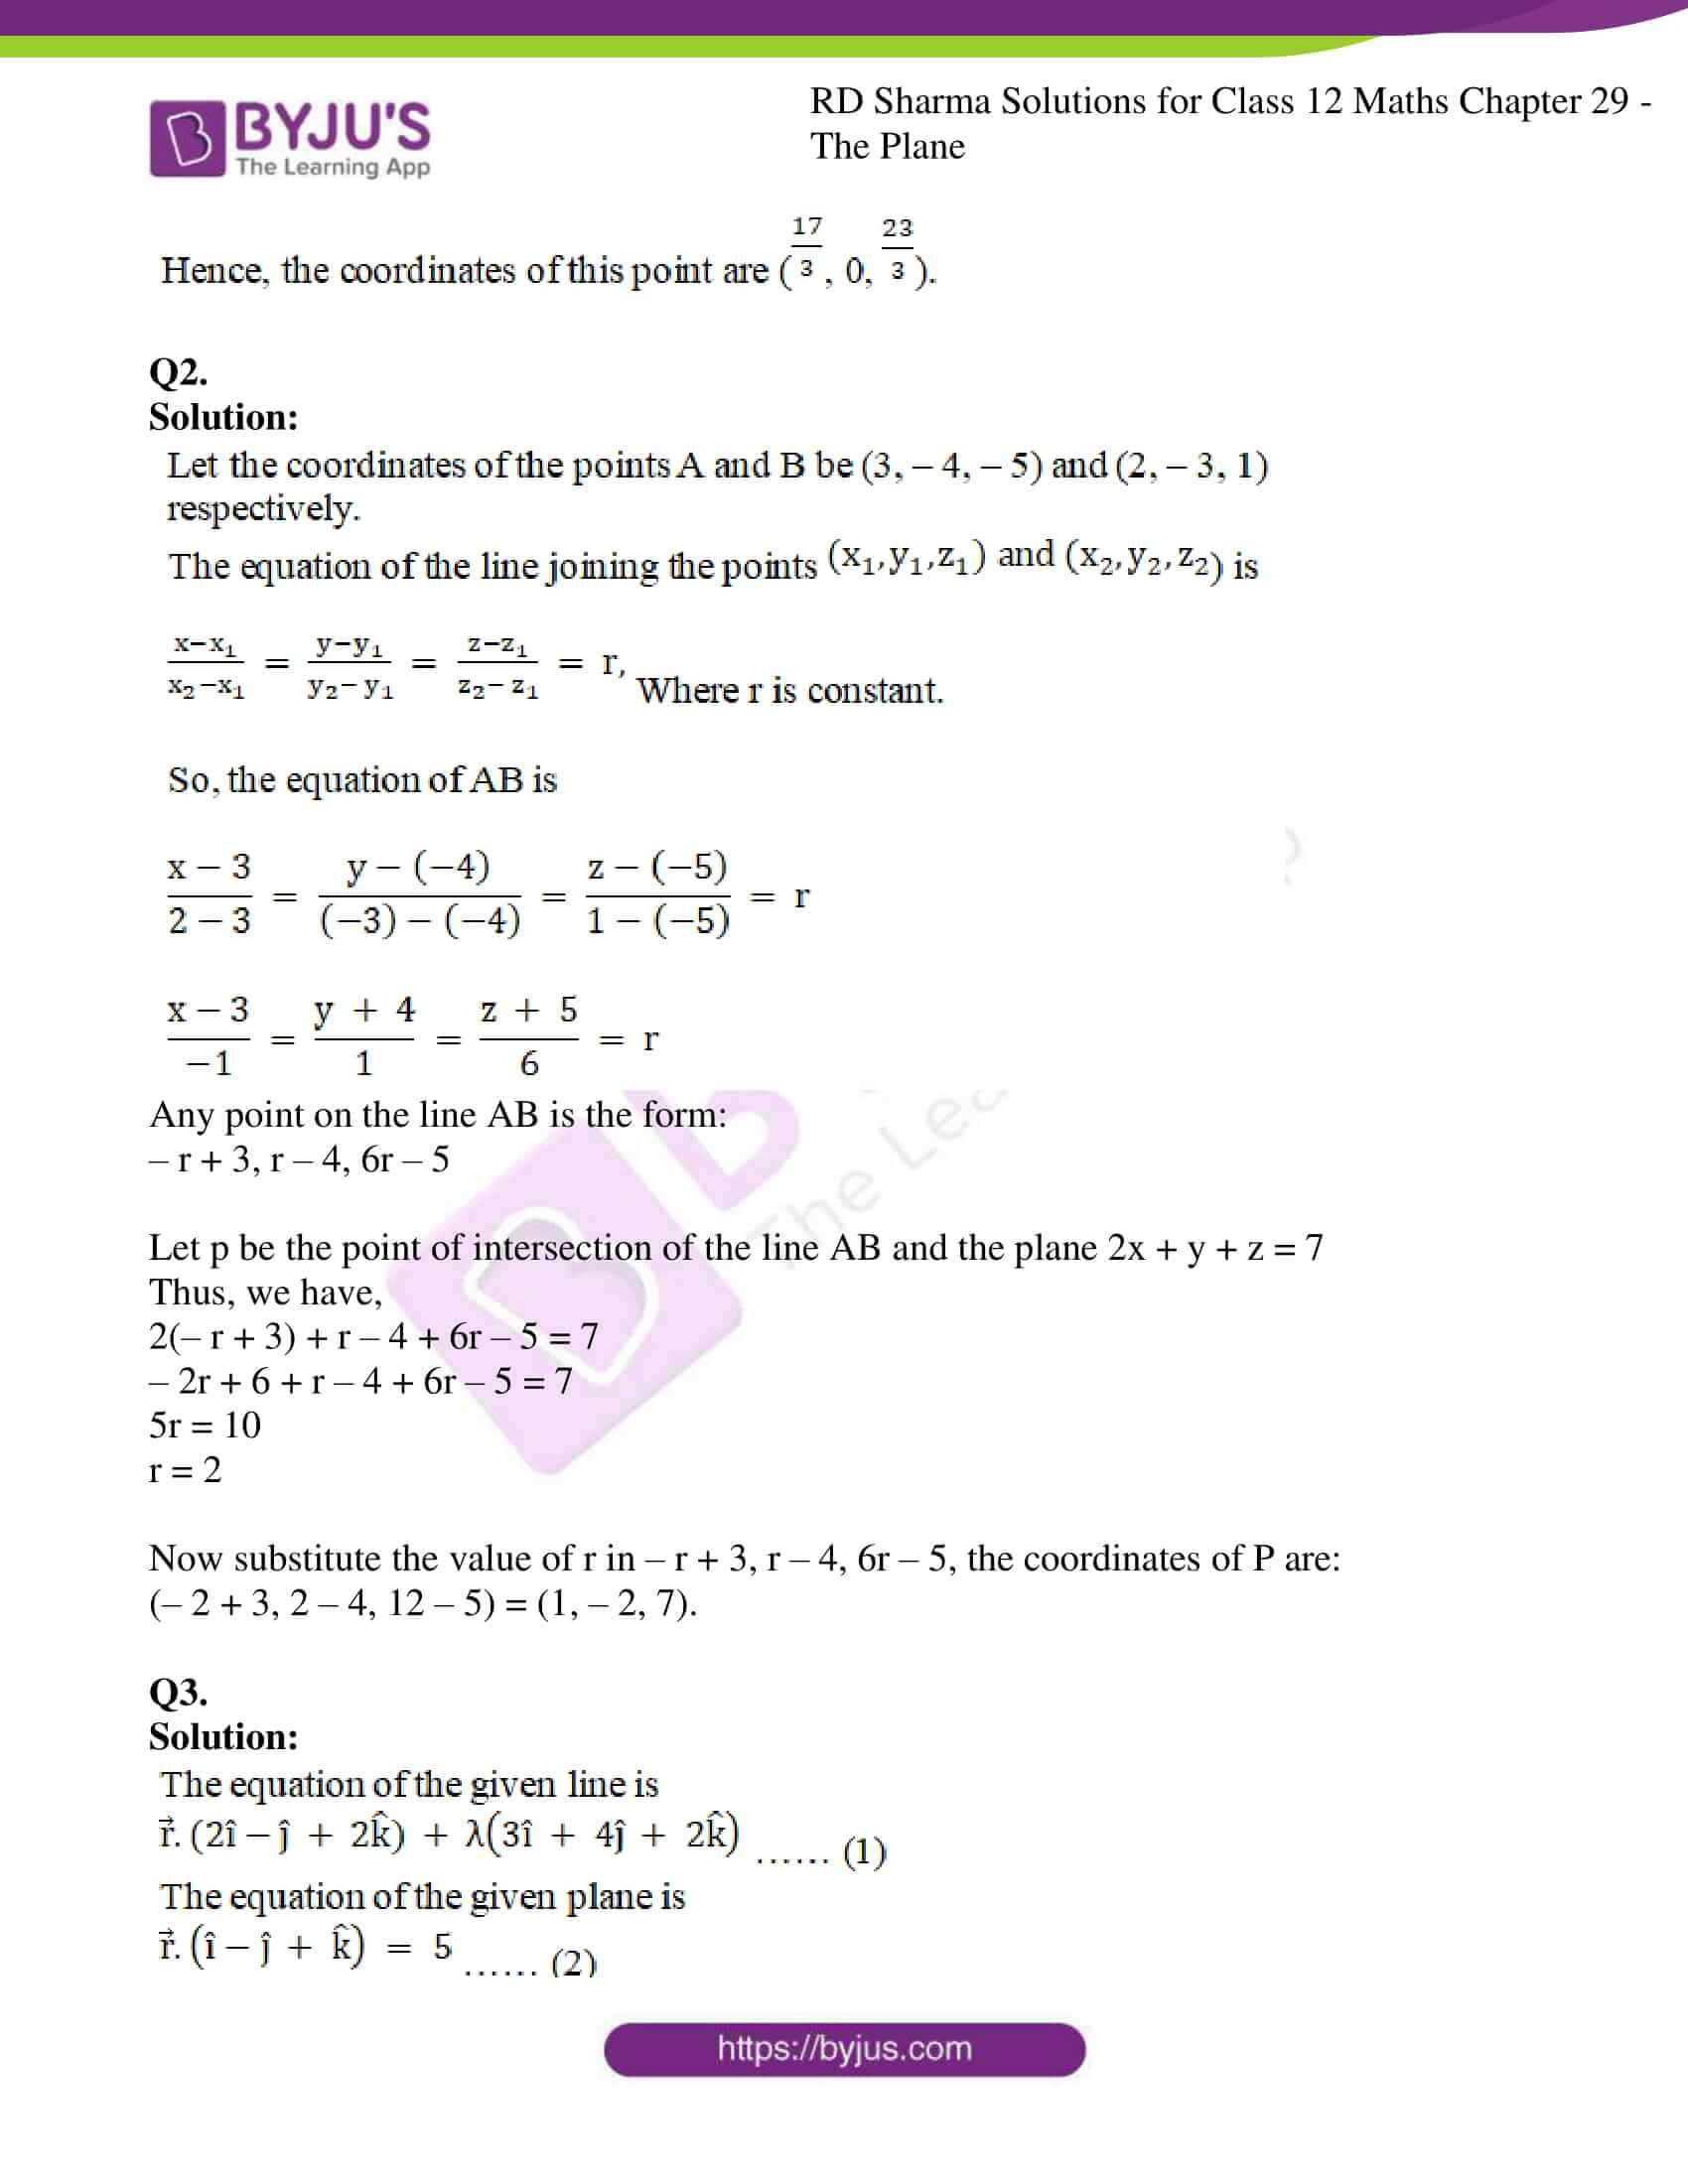 rd sharma solutions for class 12 maths chapter 29 ex 12 2